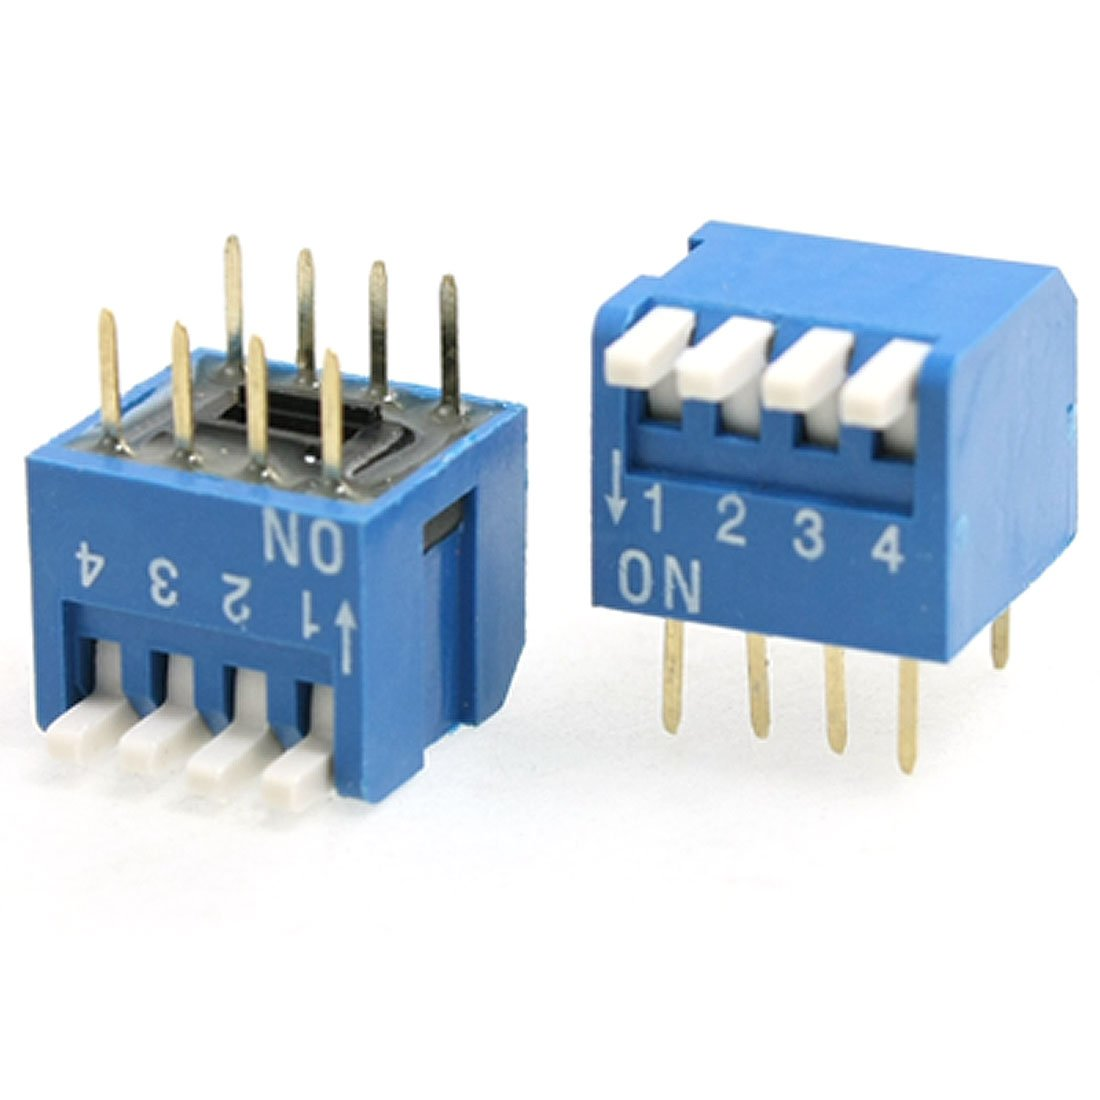 Uxcell 10 Pcs Blue 4 Positions 2.54 mm Pitch Side PIANO Type Dip Switch a11123000ux0294